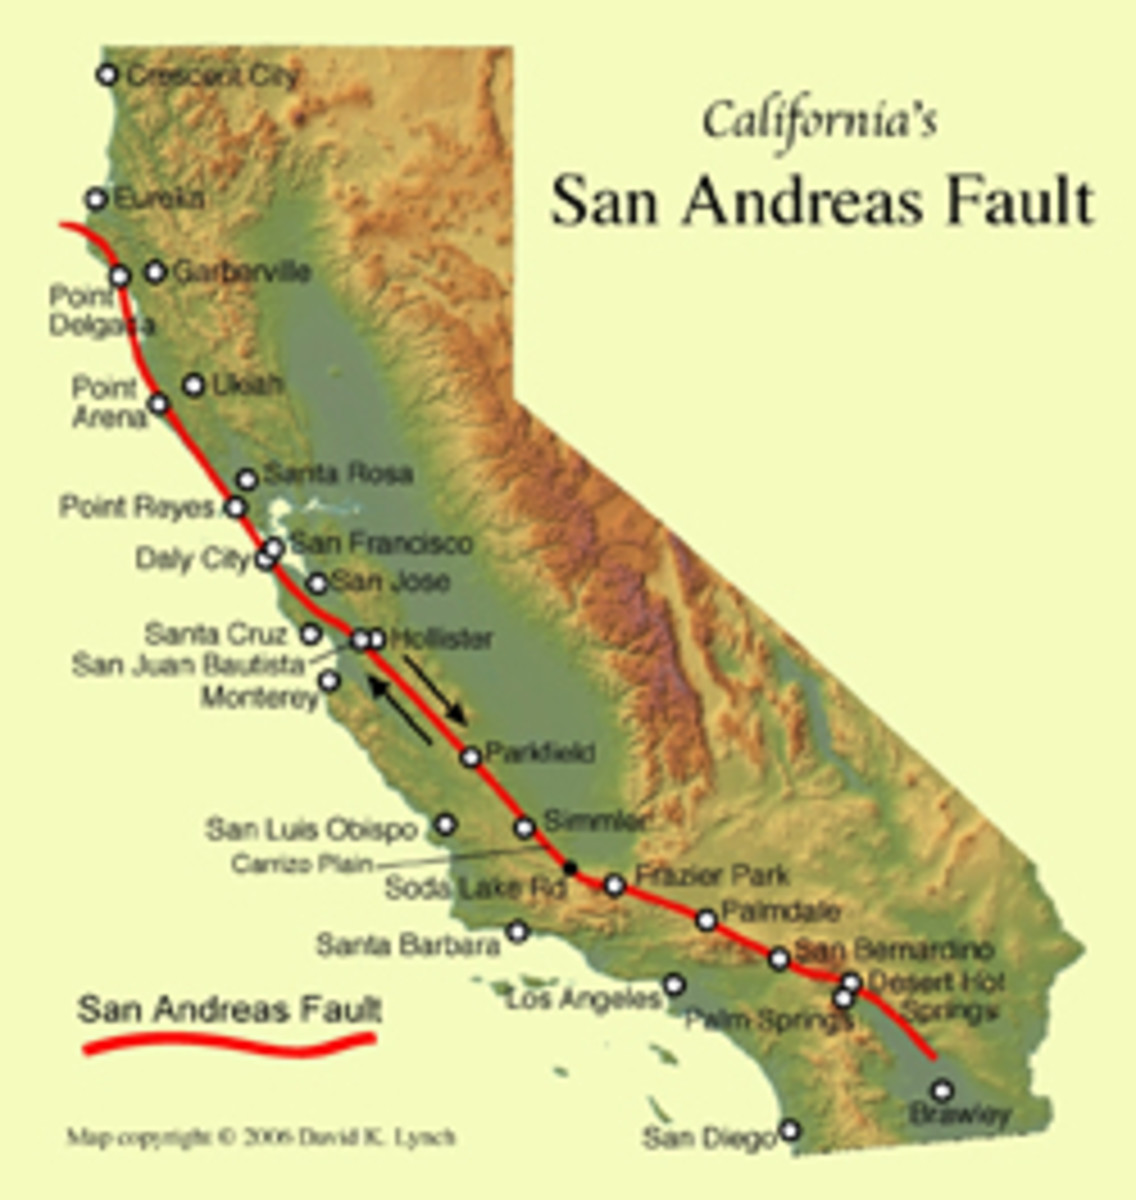 Questions about the San Andreas Fault Earthqaukes